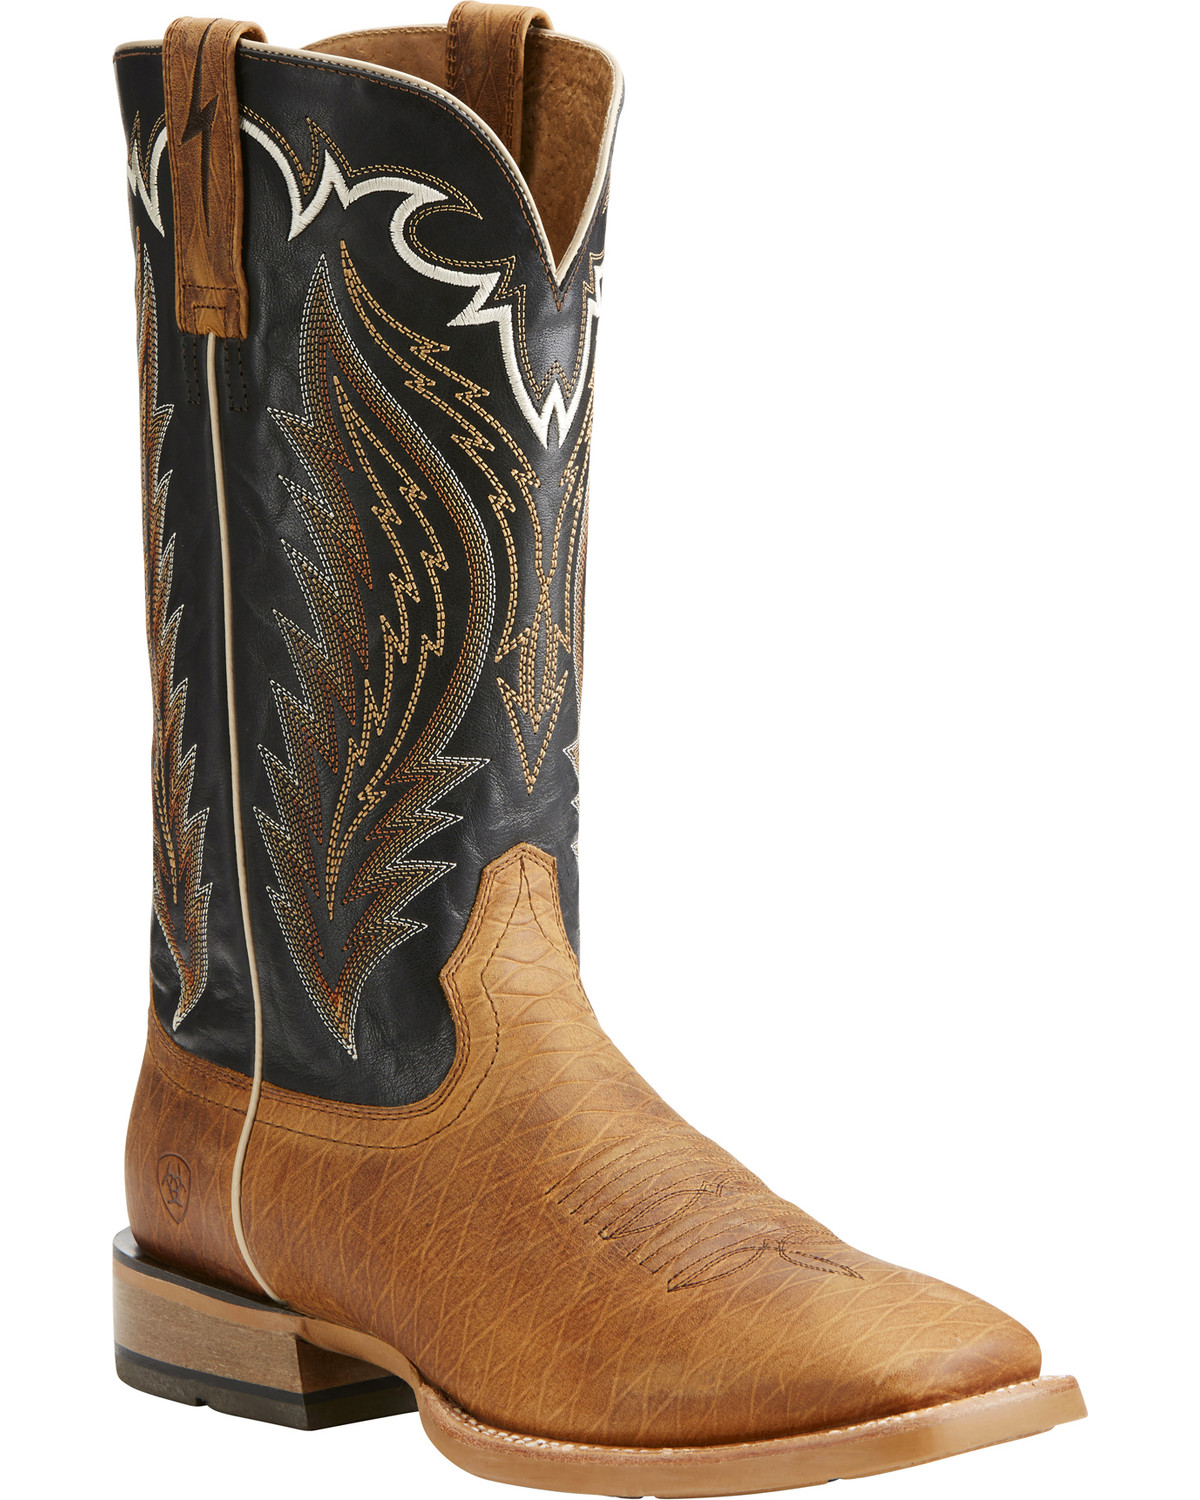 Ariat Men's Top Hand Square Toe Western Boots